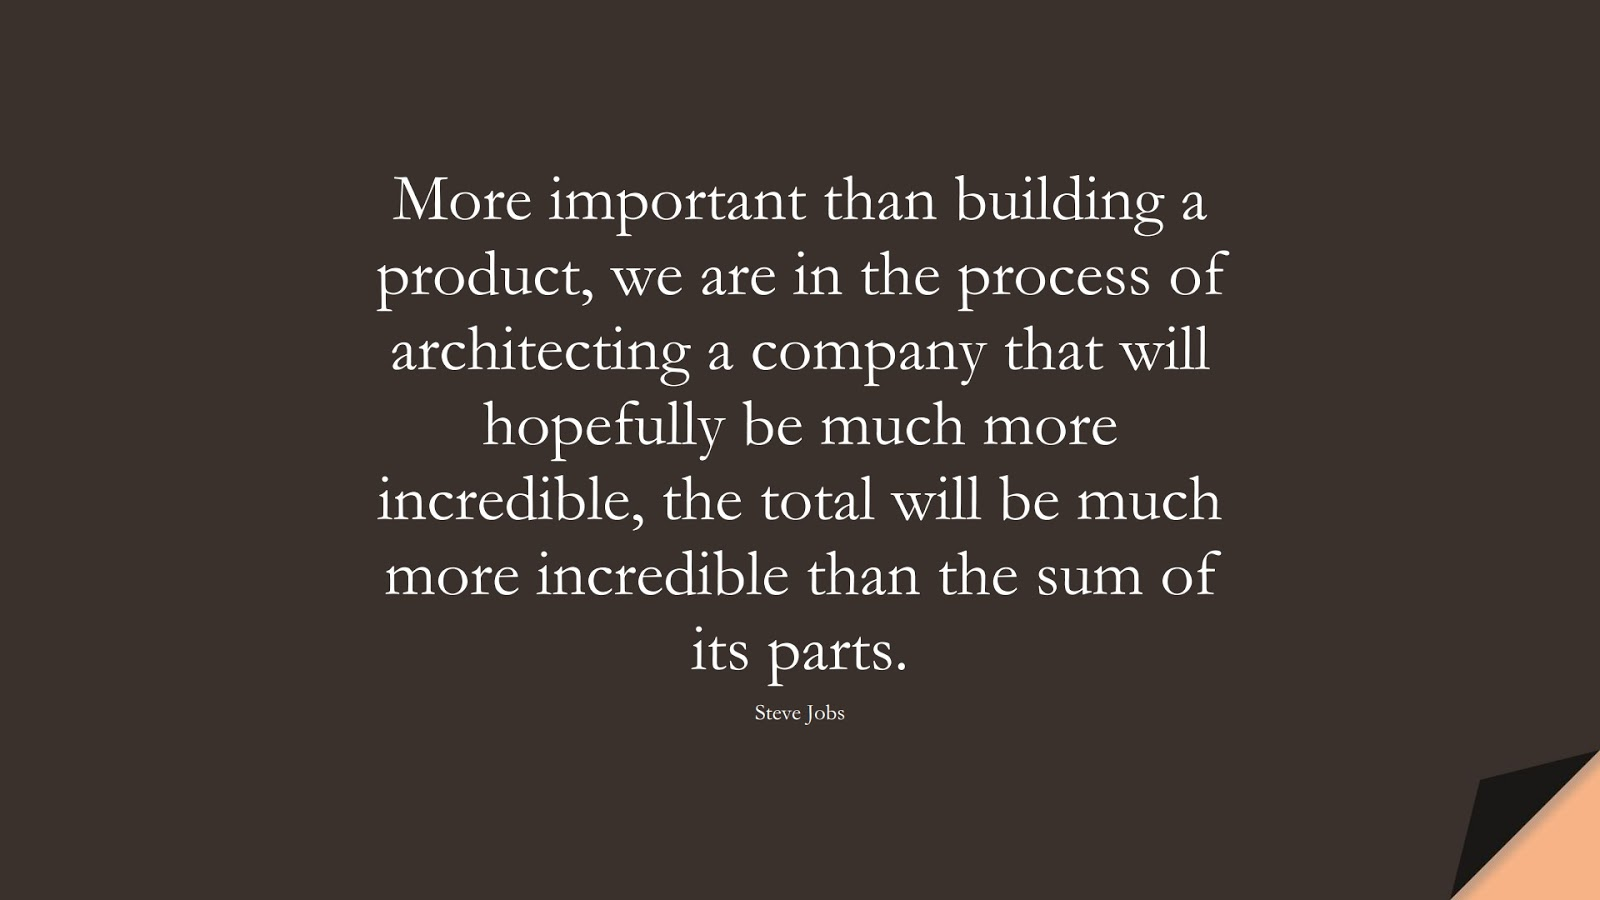 More important than building a product, we are in the process of architecting a company that will hopefully be much more incredible, the total will be much more incredible than the sum of its parts. (Steve Jobs);  #SteveJobsQuotes